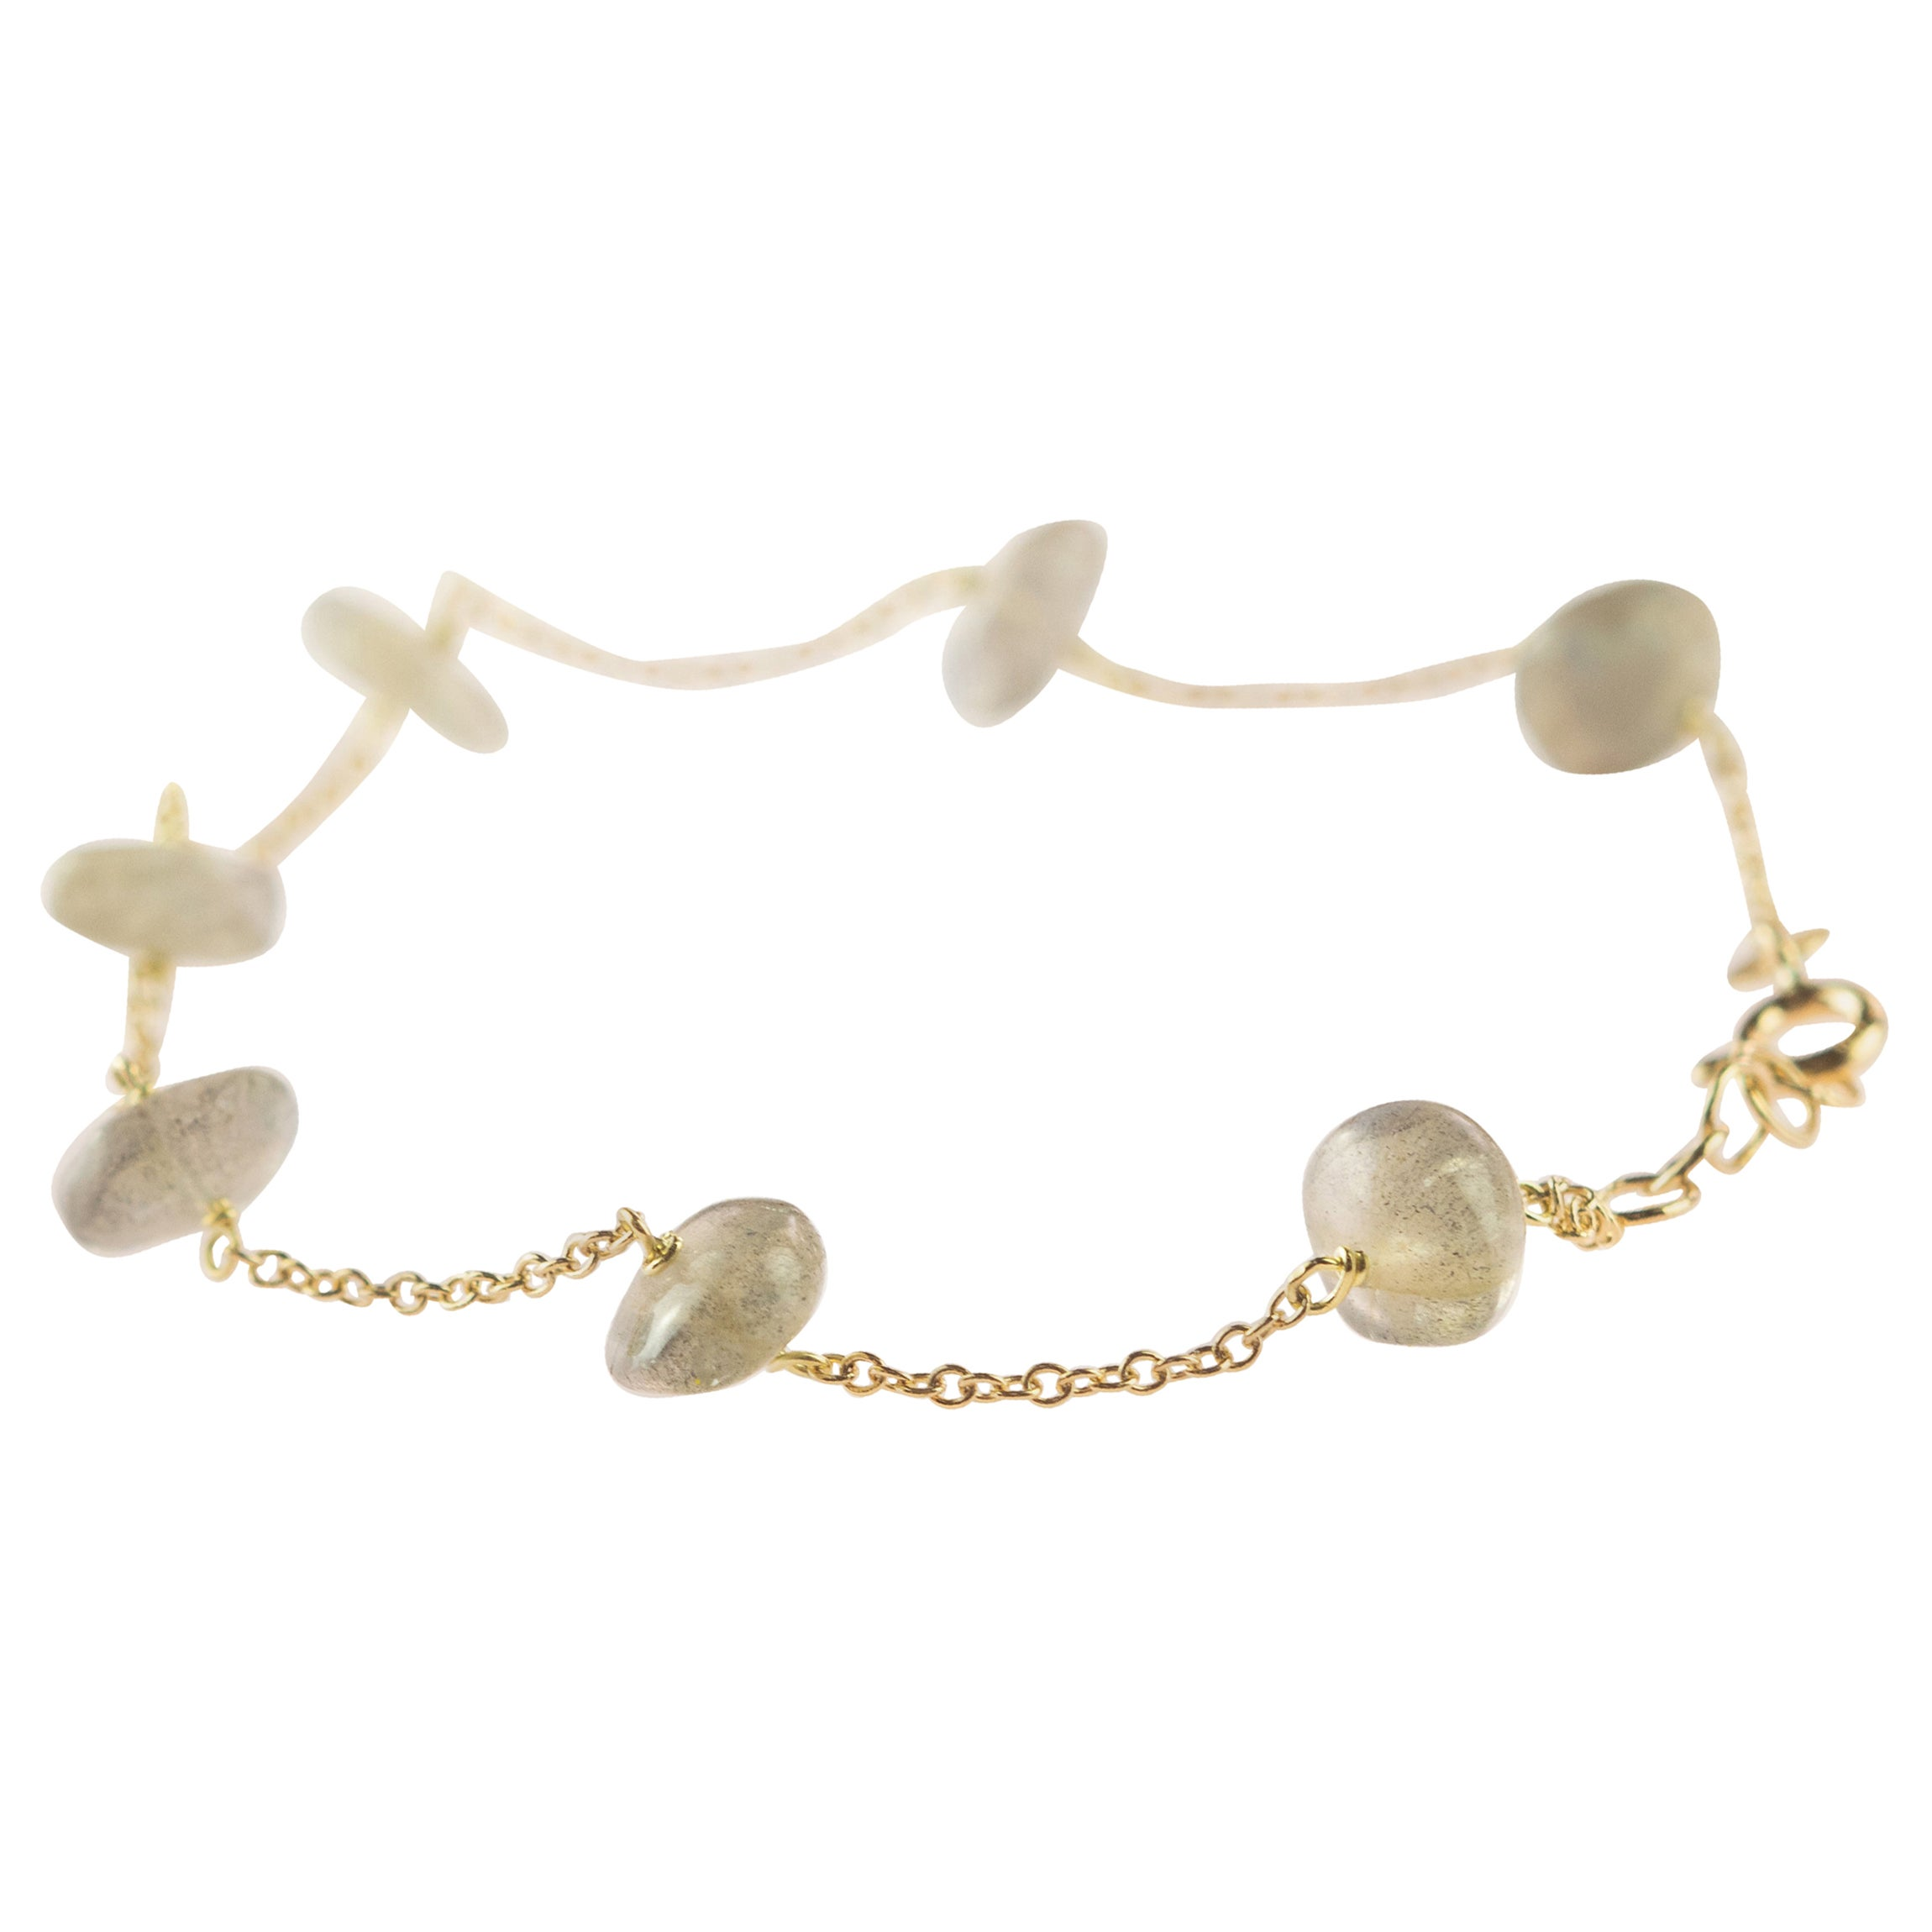 Intini Jewes 18 Karat Gold Chain Cat's Eye Rondelles Handmade Cocktail Bracelet